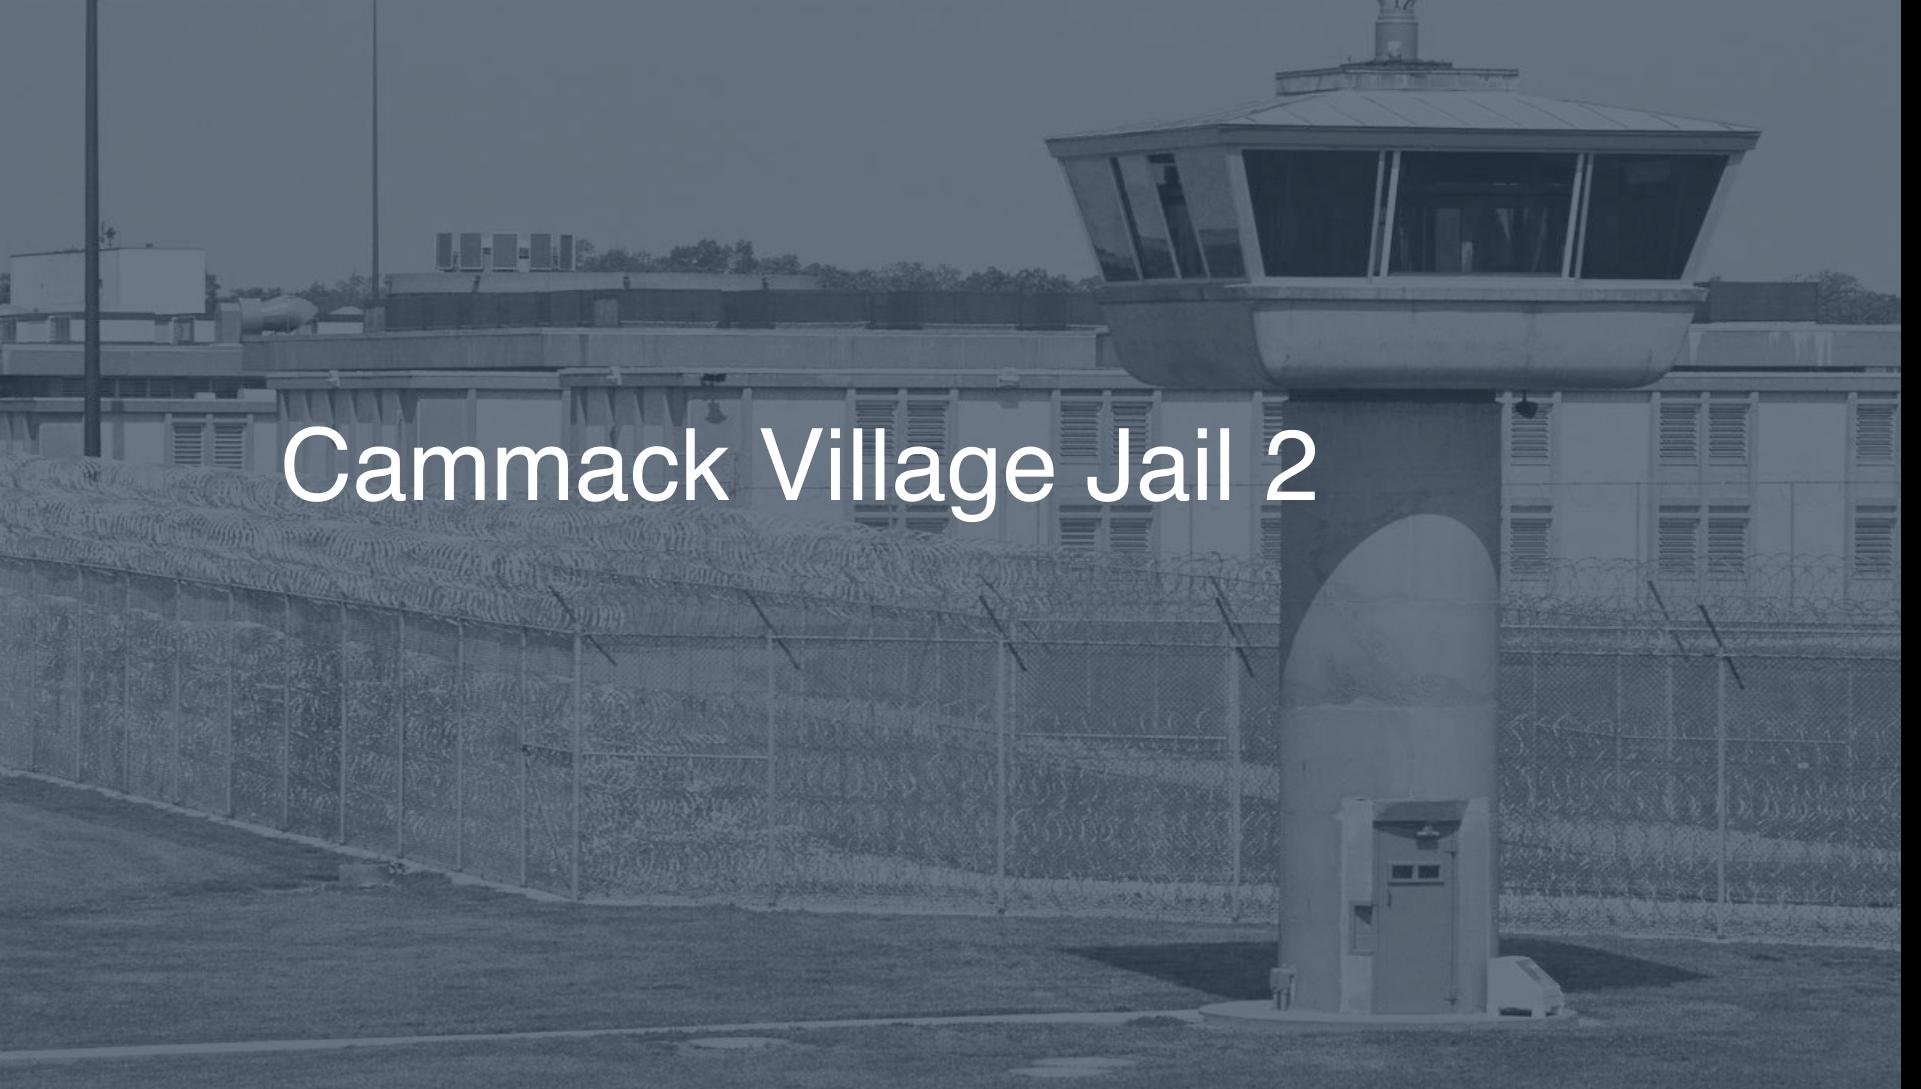 Cammack Village Jail correctional facility picture